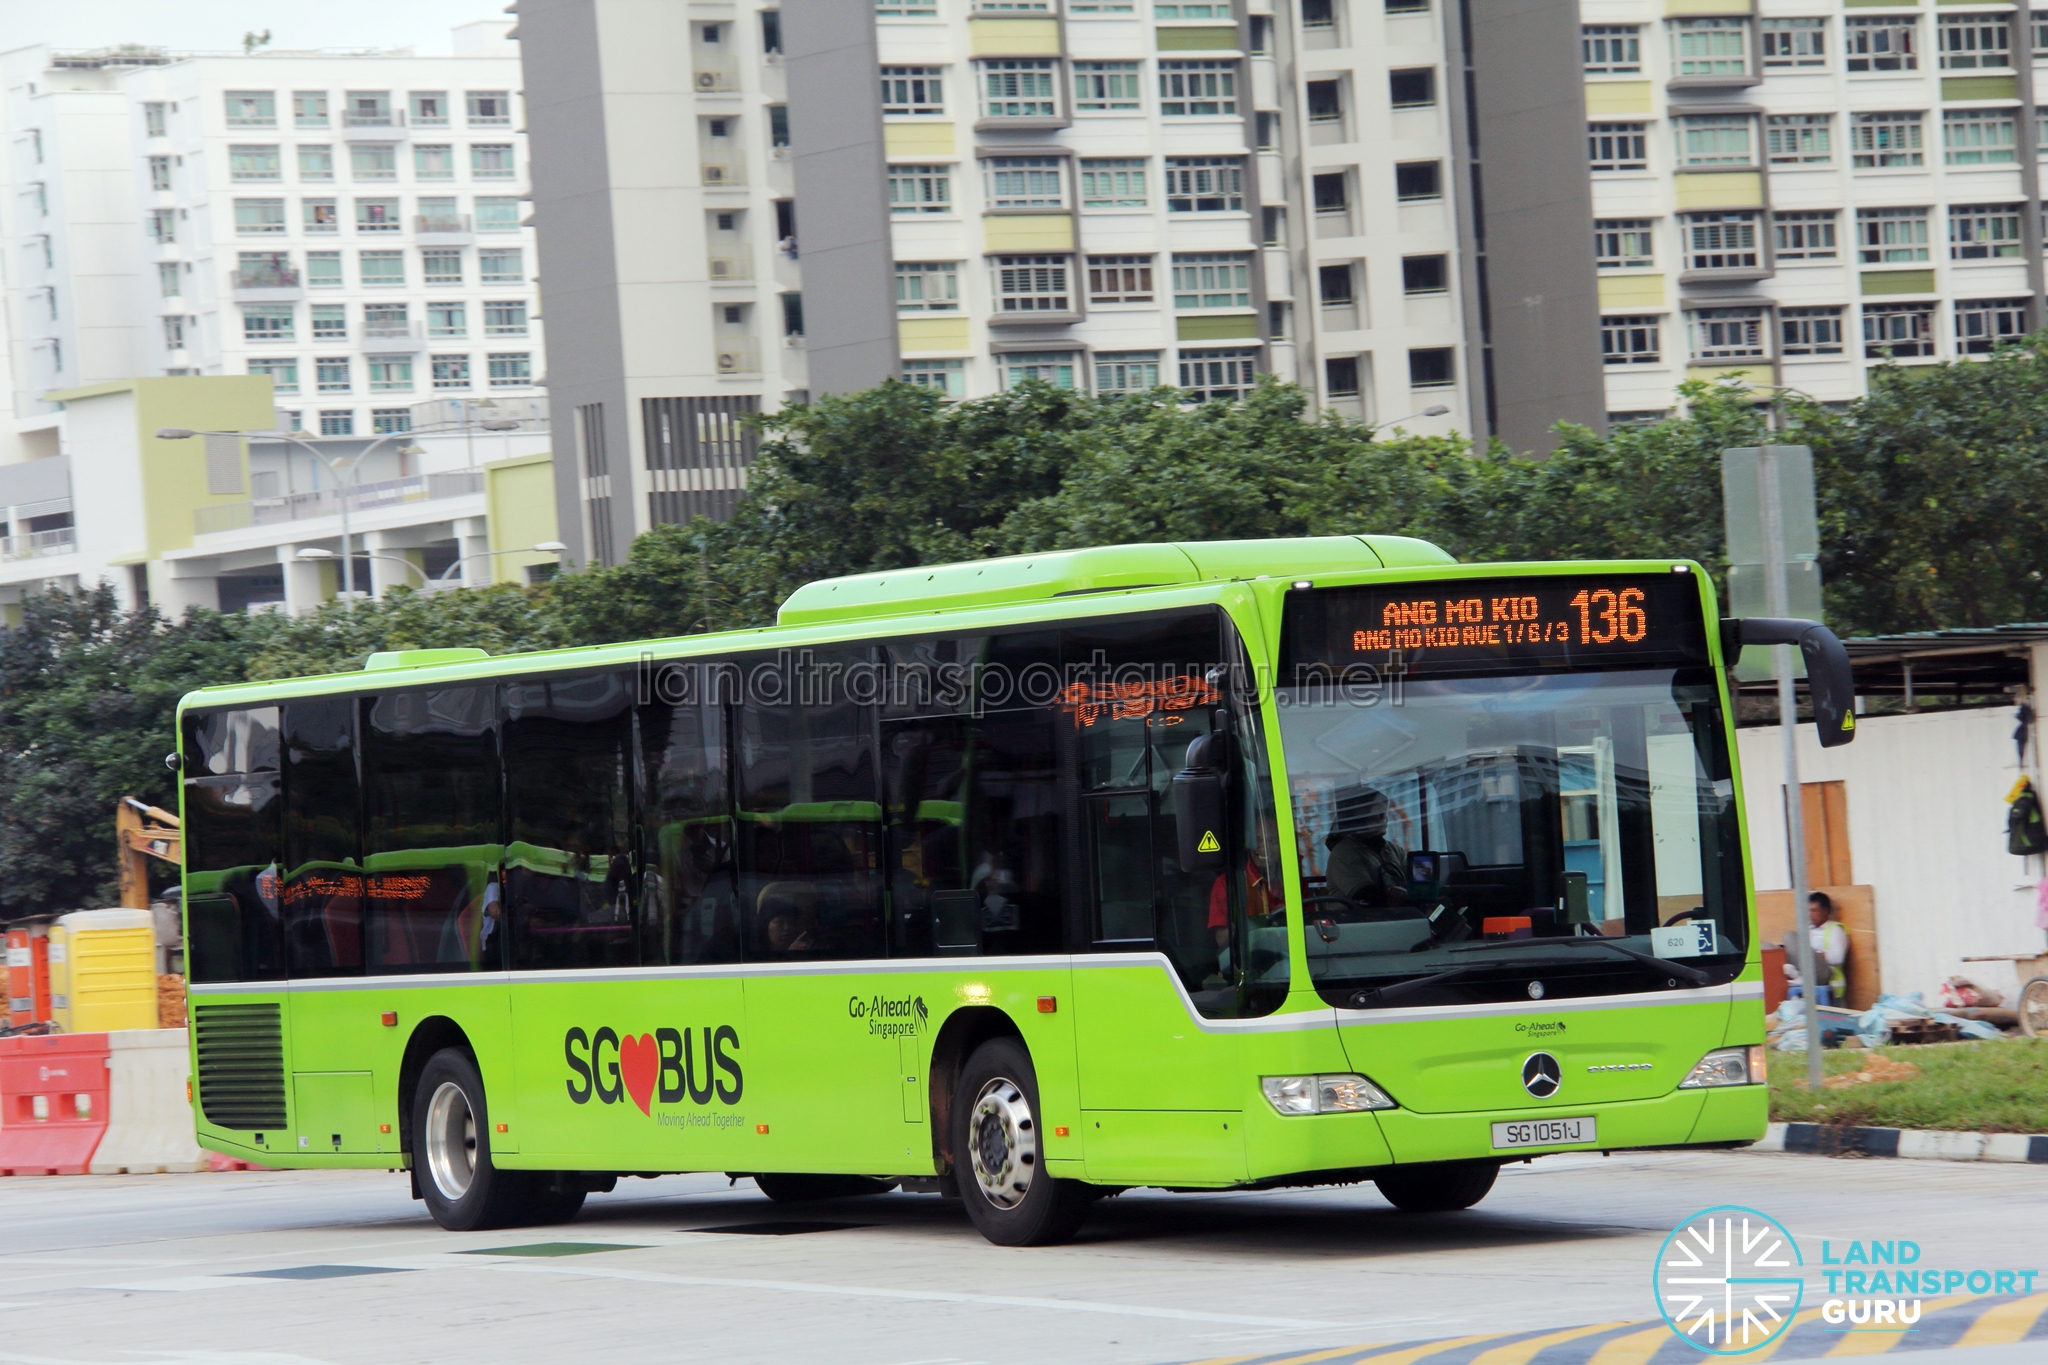 Go-Ahead Bus Service 136 | Land Transport Guru